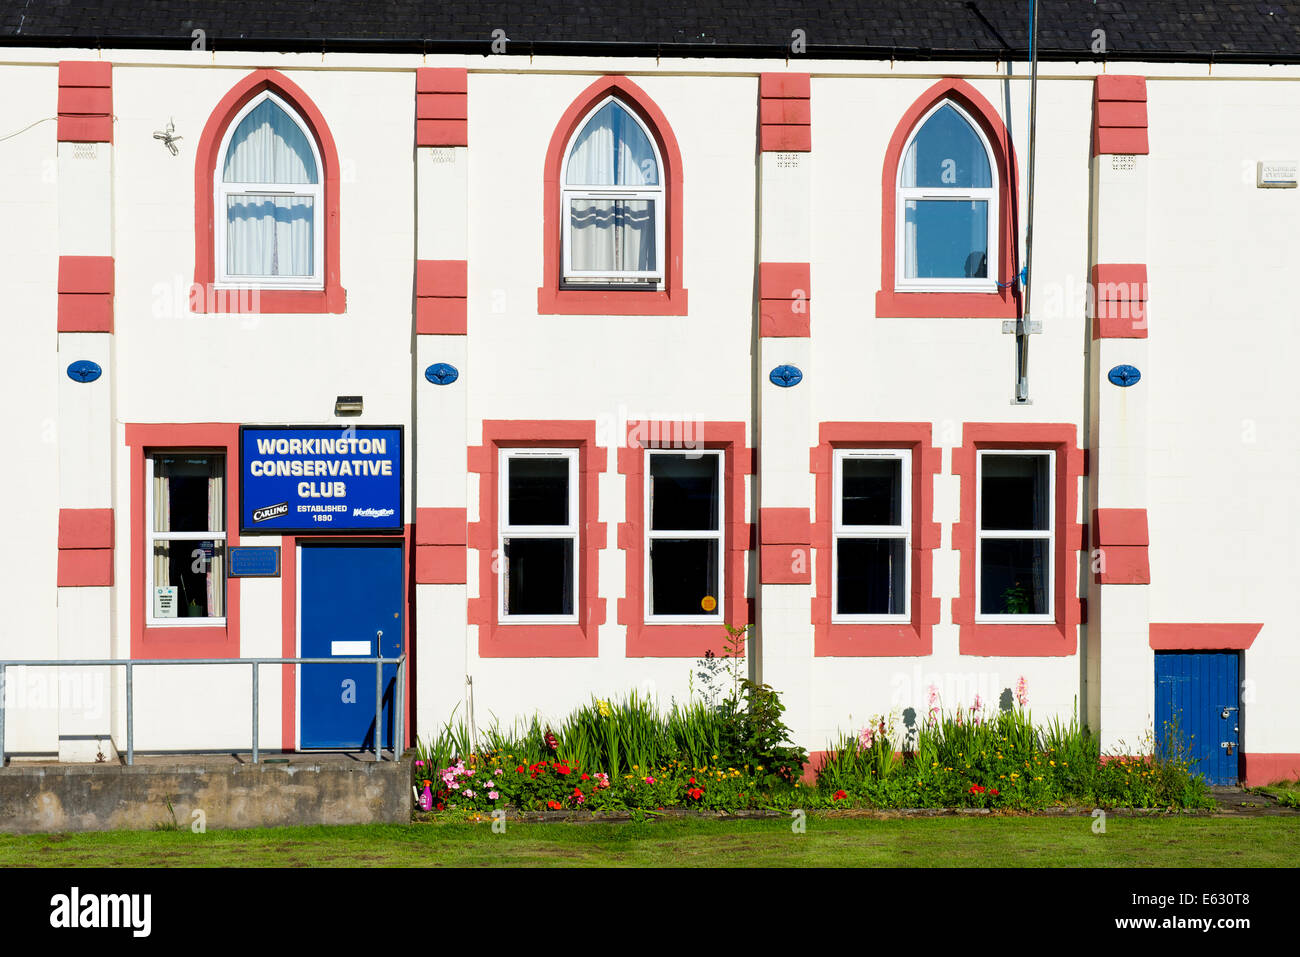 The Conservative Club in Workington, West Cumbria, England UK - Stock Image